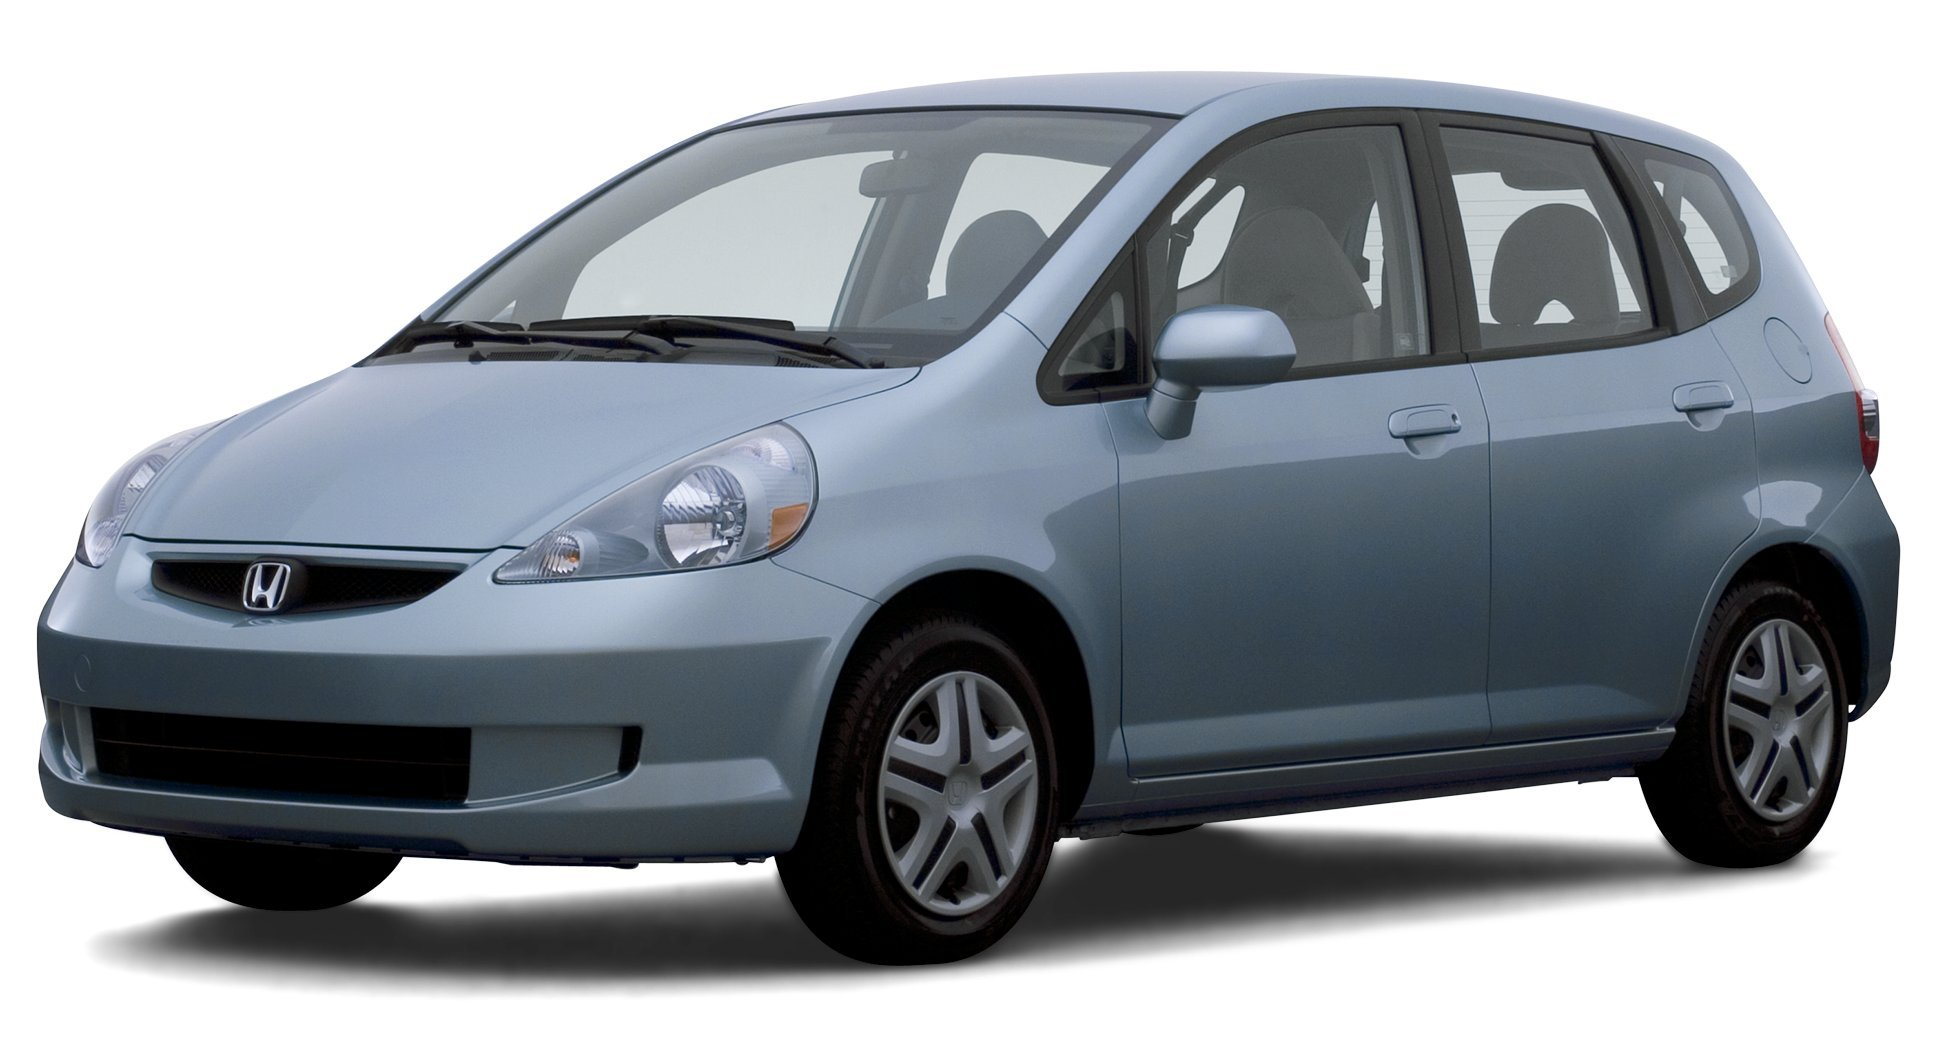 2007 Honda Fit, 5-Door Hatchback Automatic Transmission ...